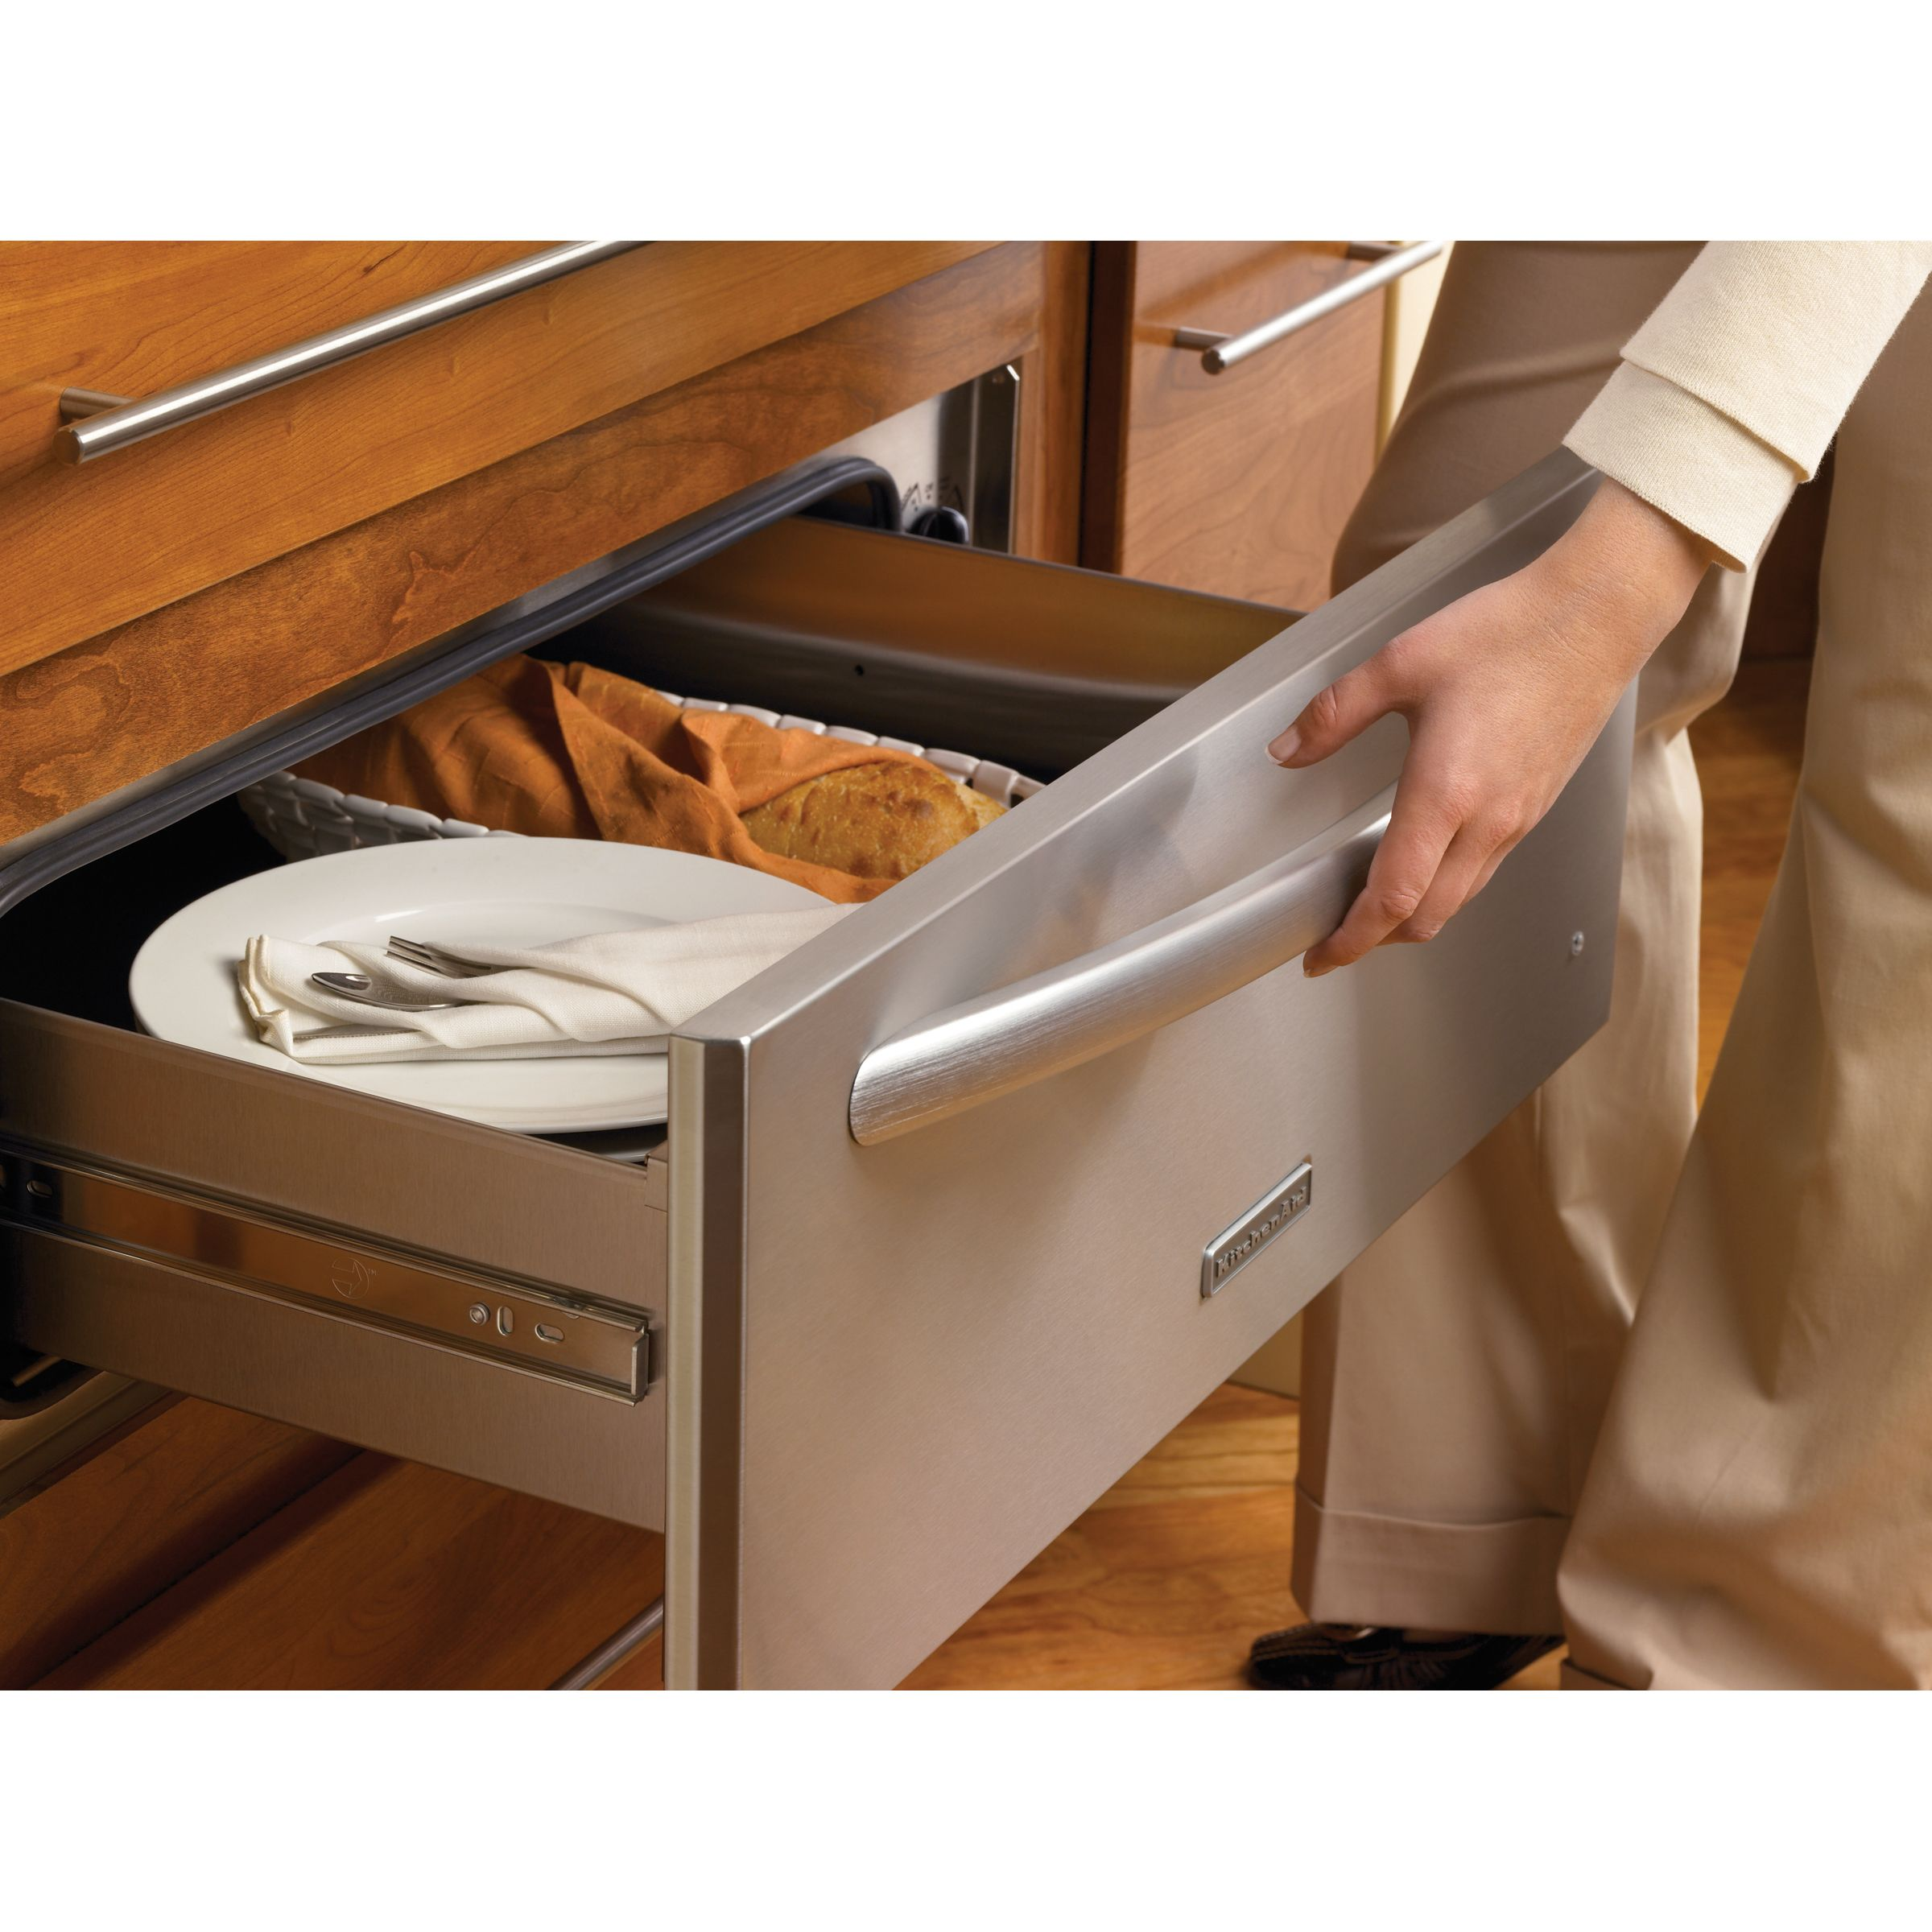 "KitchenAid 30"" Slow Cook Warming Drawer"